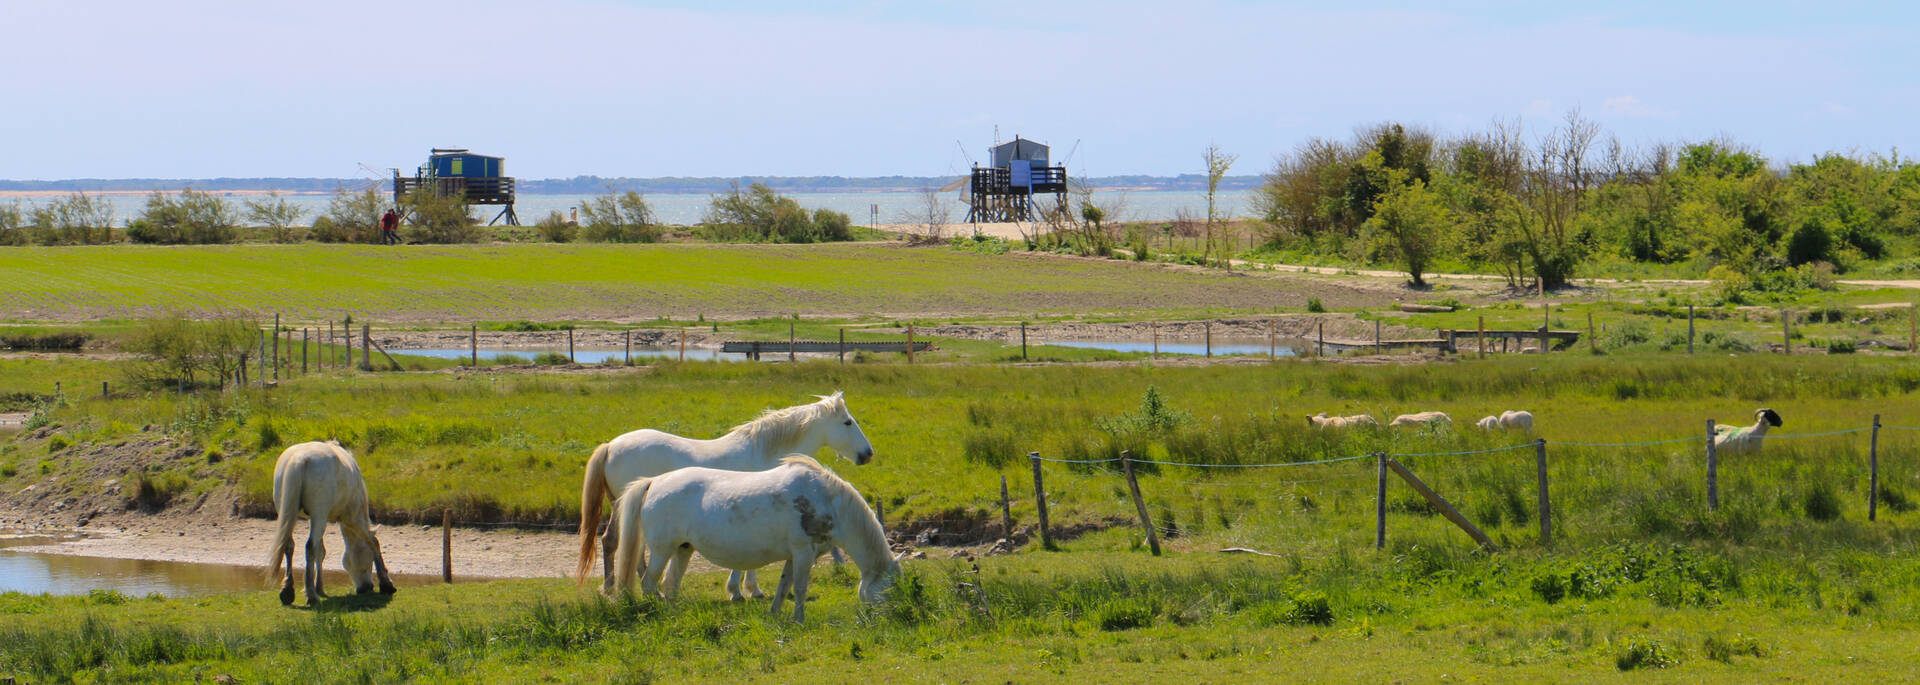 Horses of the Aquaculture Farm in Madame Island - © Office de tourisme Rochefort Océan